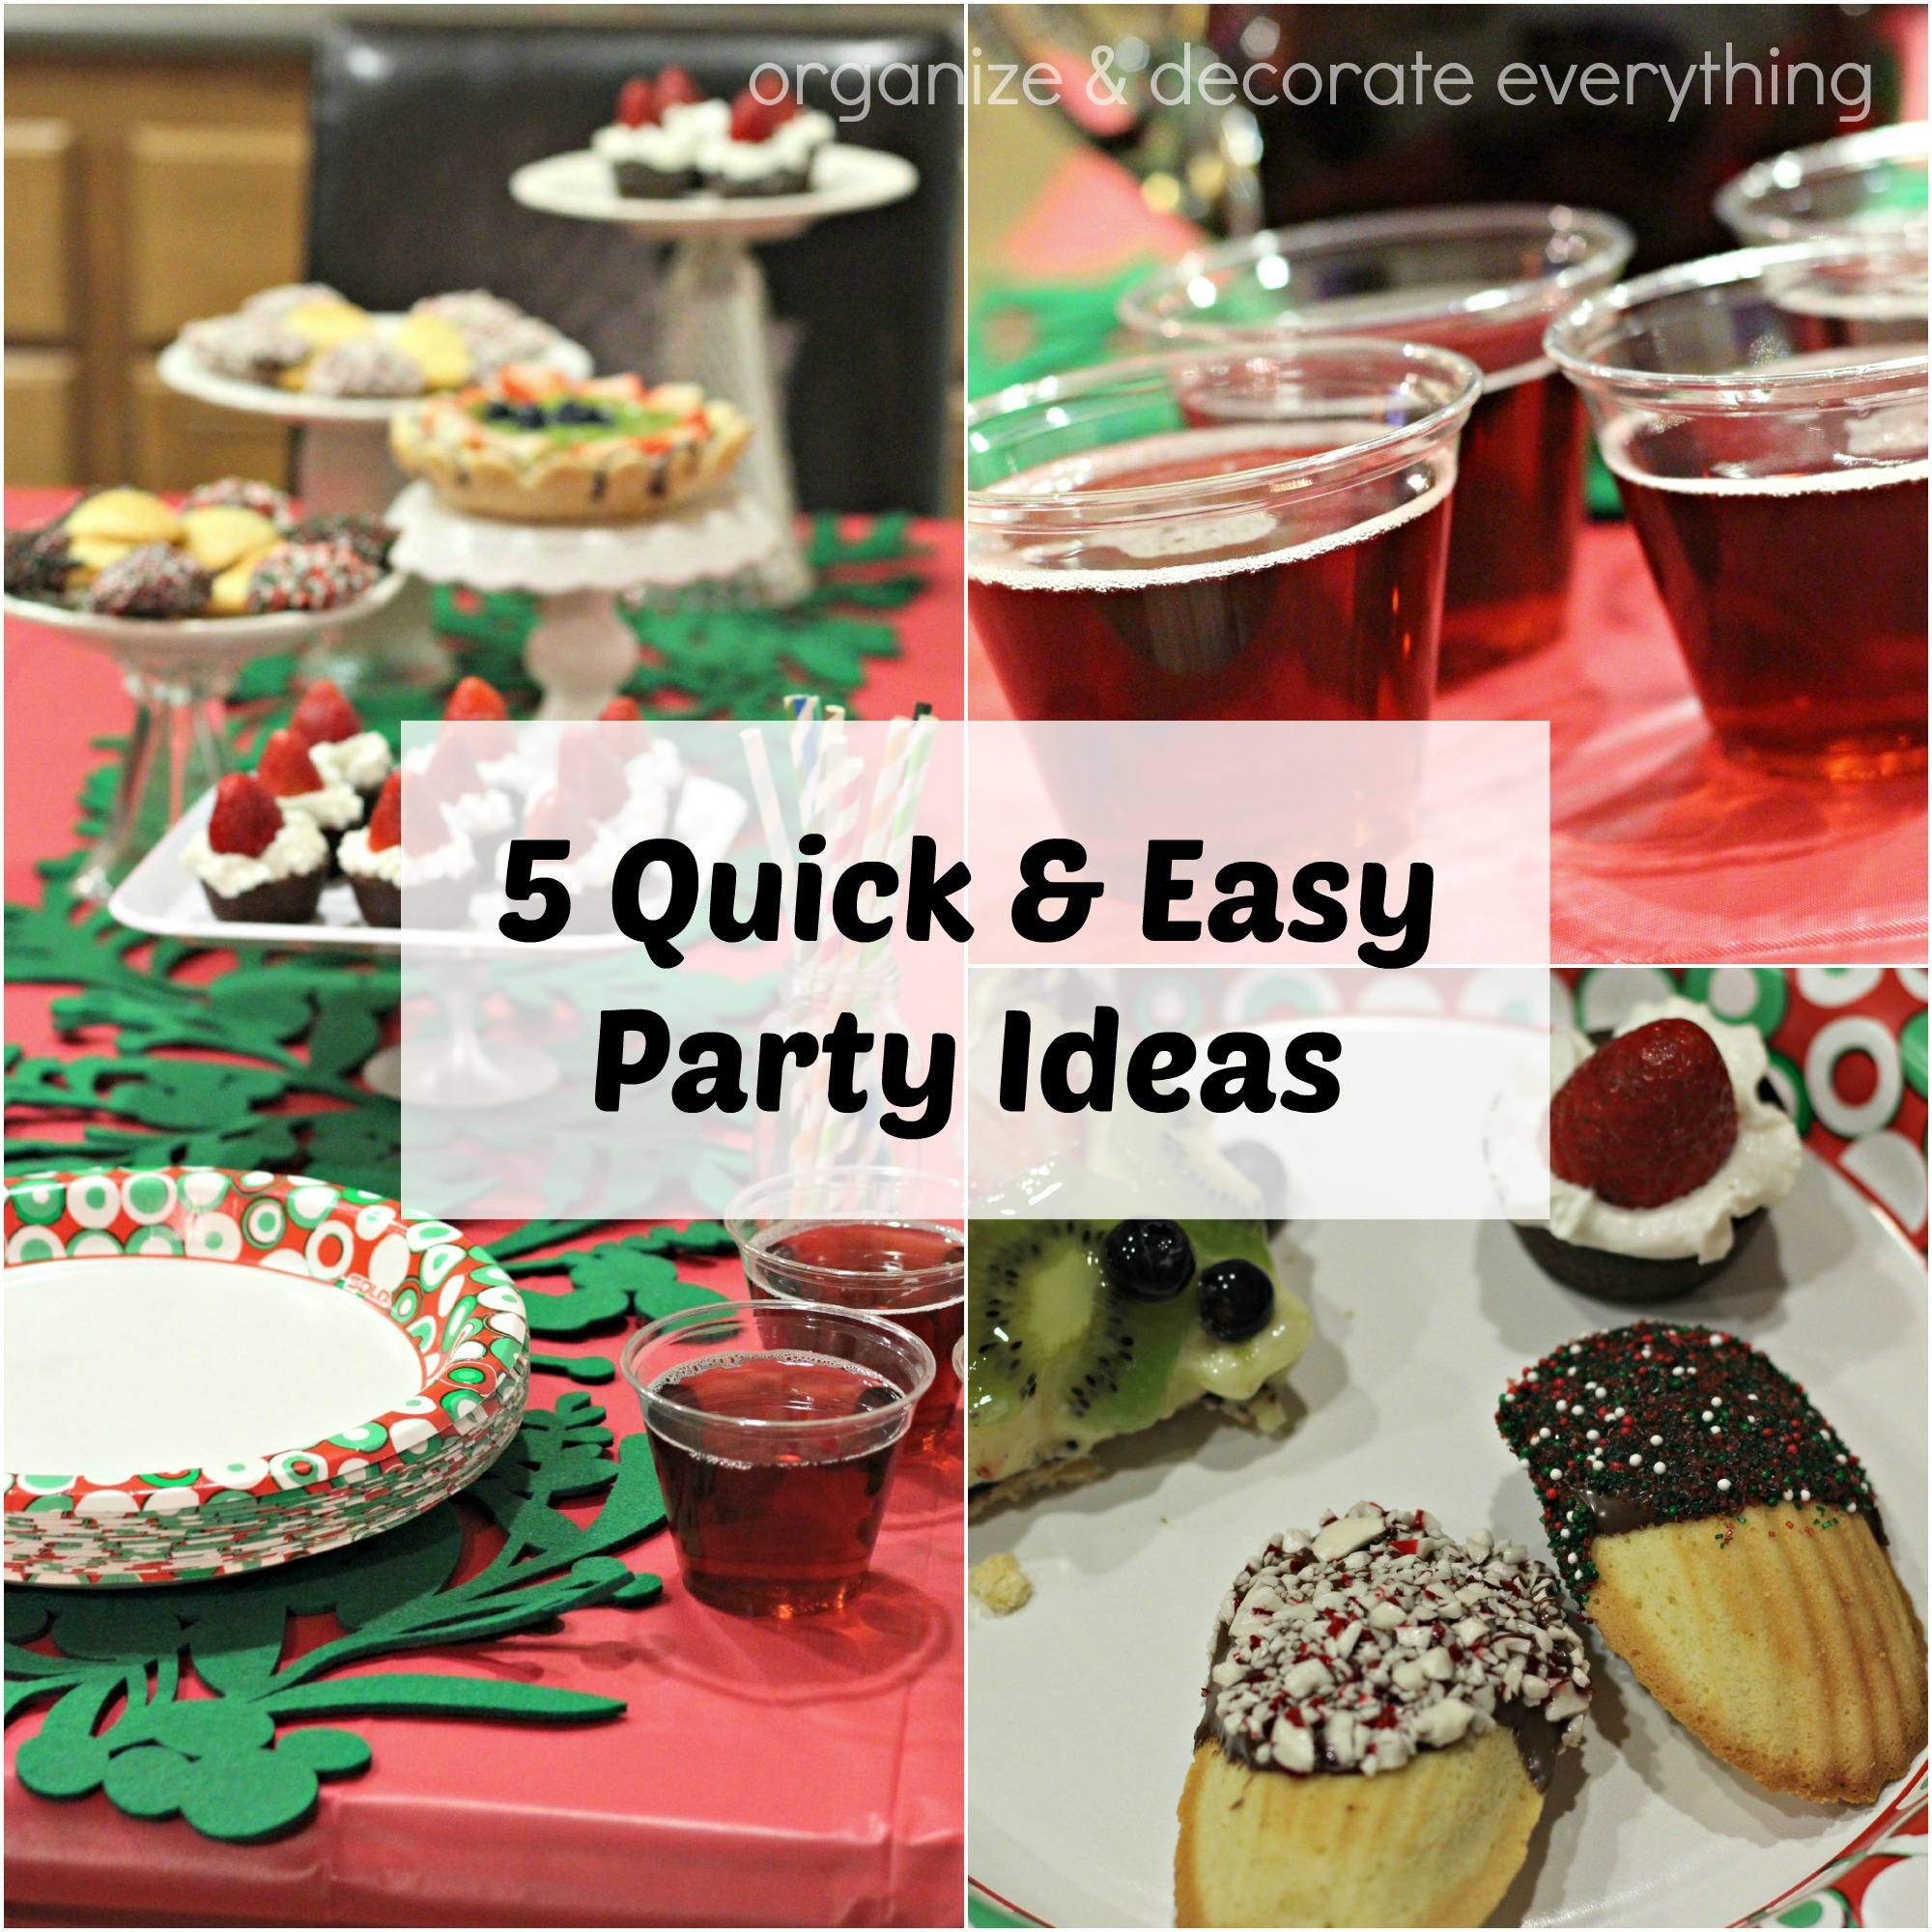 Quick Birthday Party Recipes Image Inspiration of Cake and